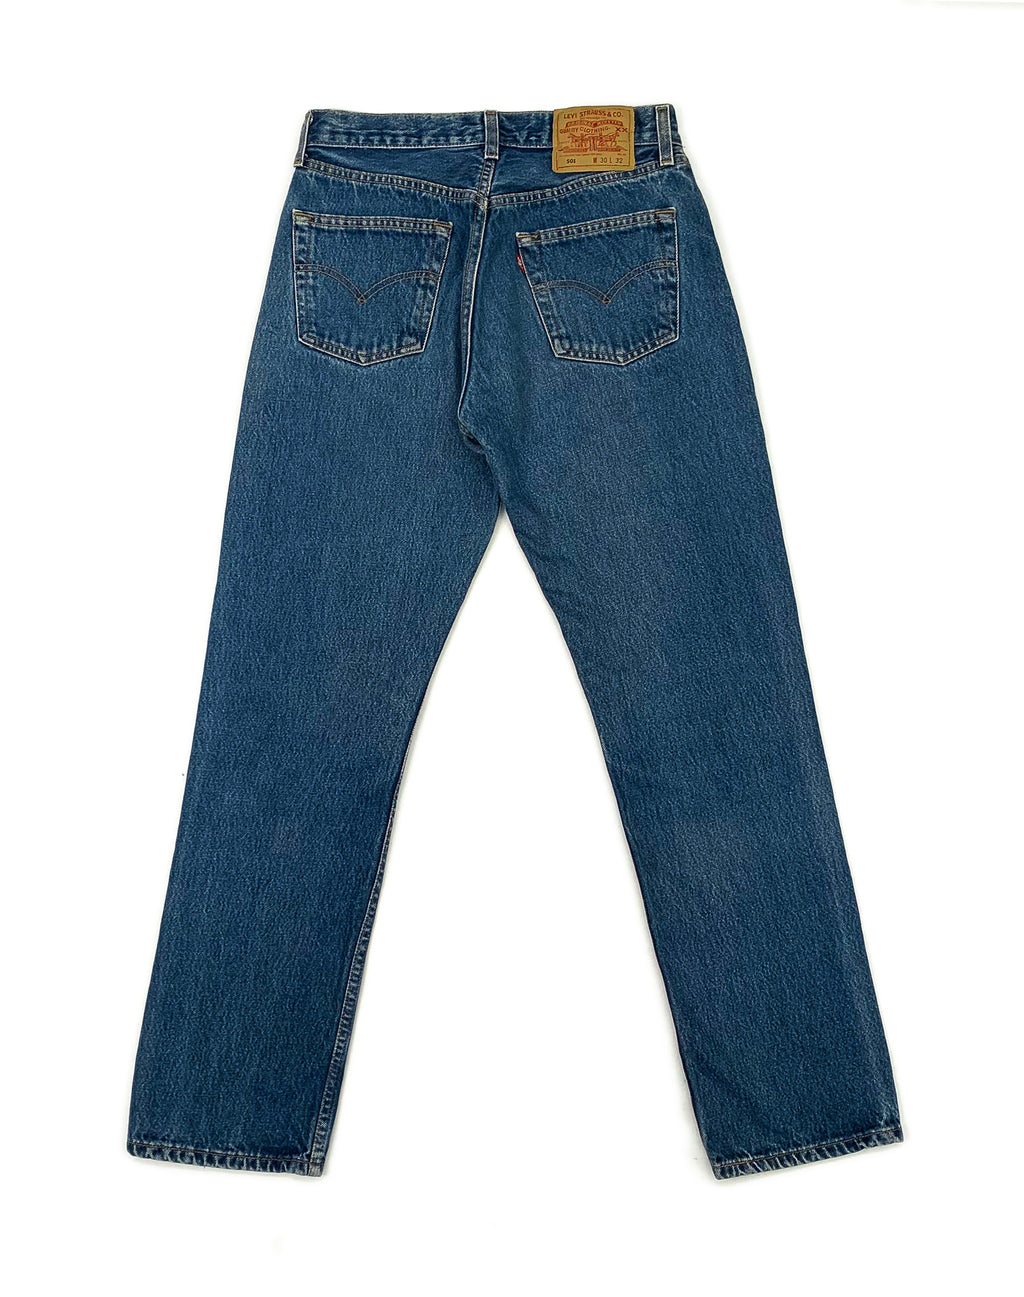 LEVI'S 501 MID-WASH JEANS